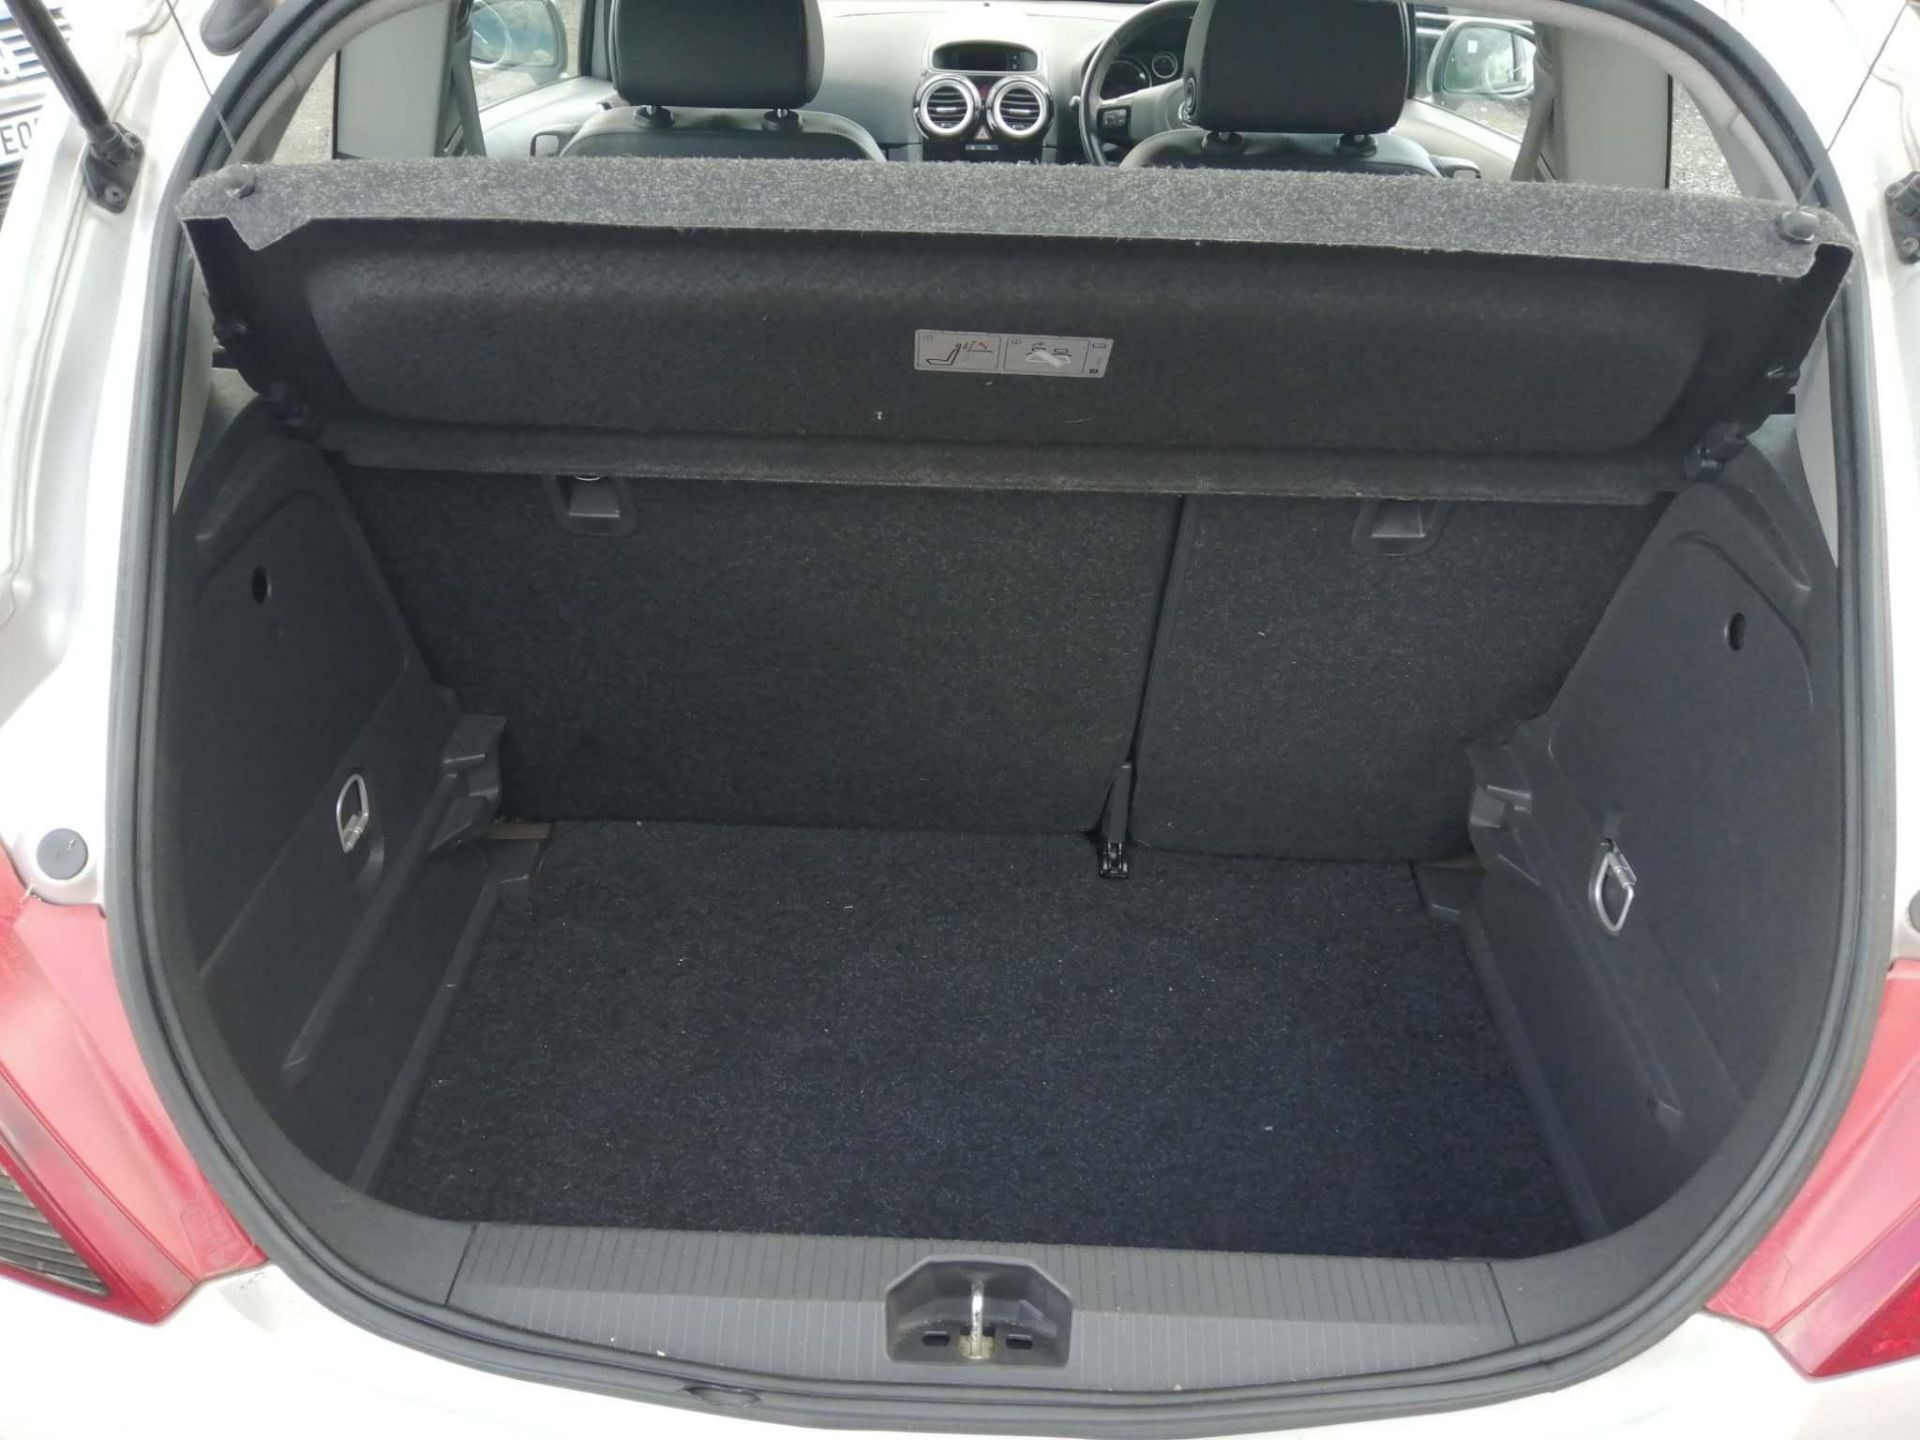 2010 Vauxhall Corsa 1.2 Design 3dr Hatchback - CL505 - NO VAT ON THE HAMMER - Location: Corby - Image 4 of 11